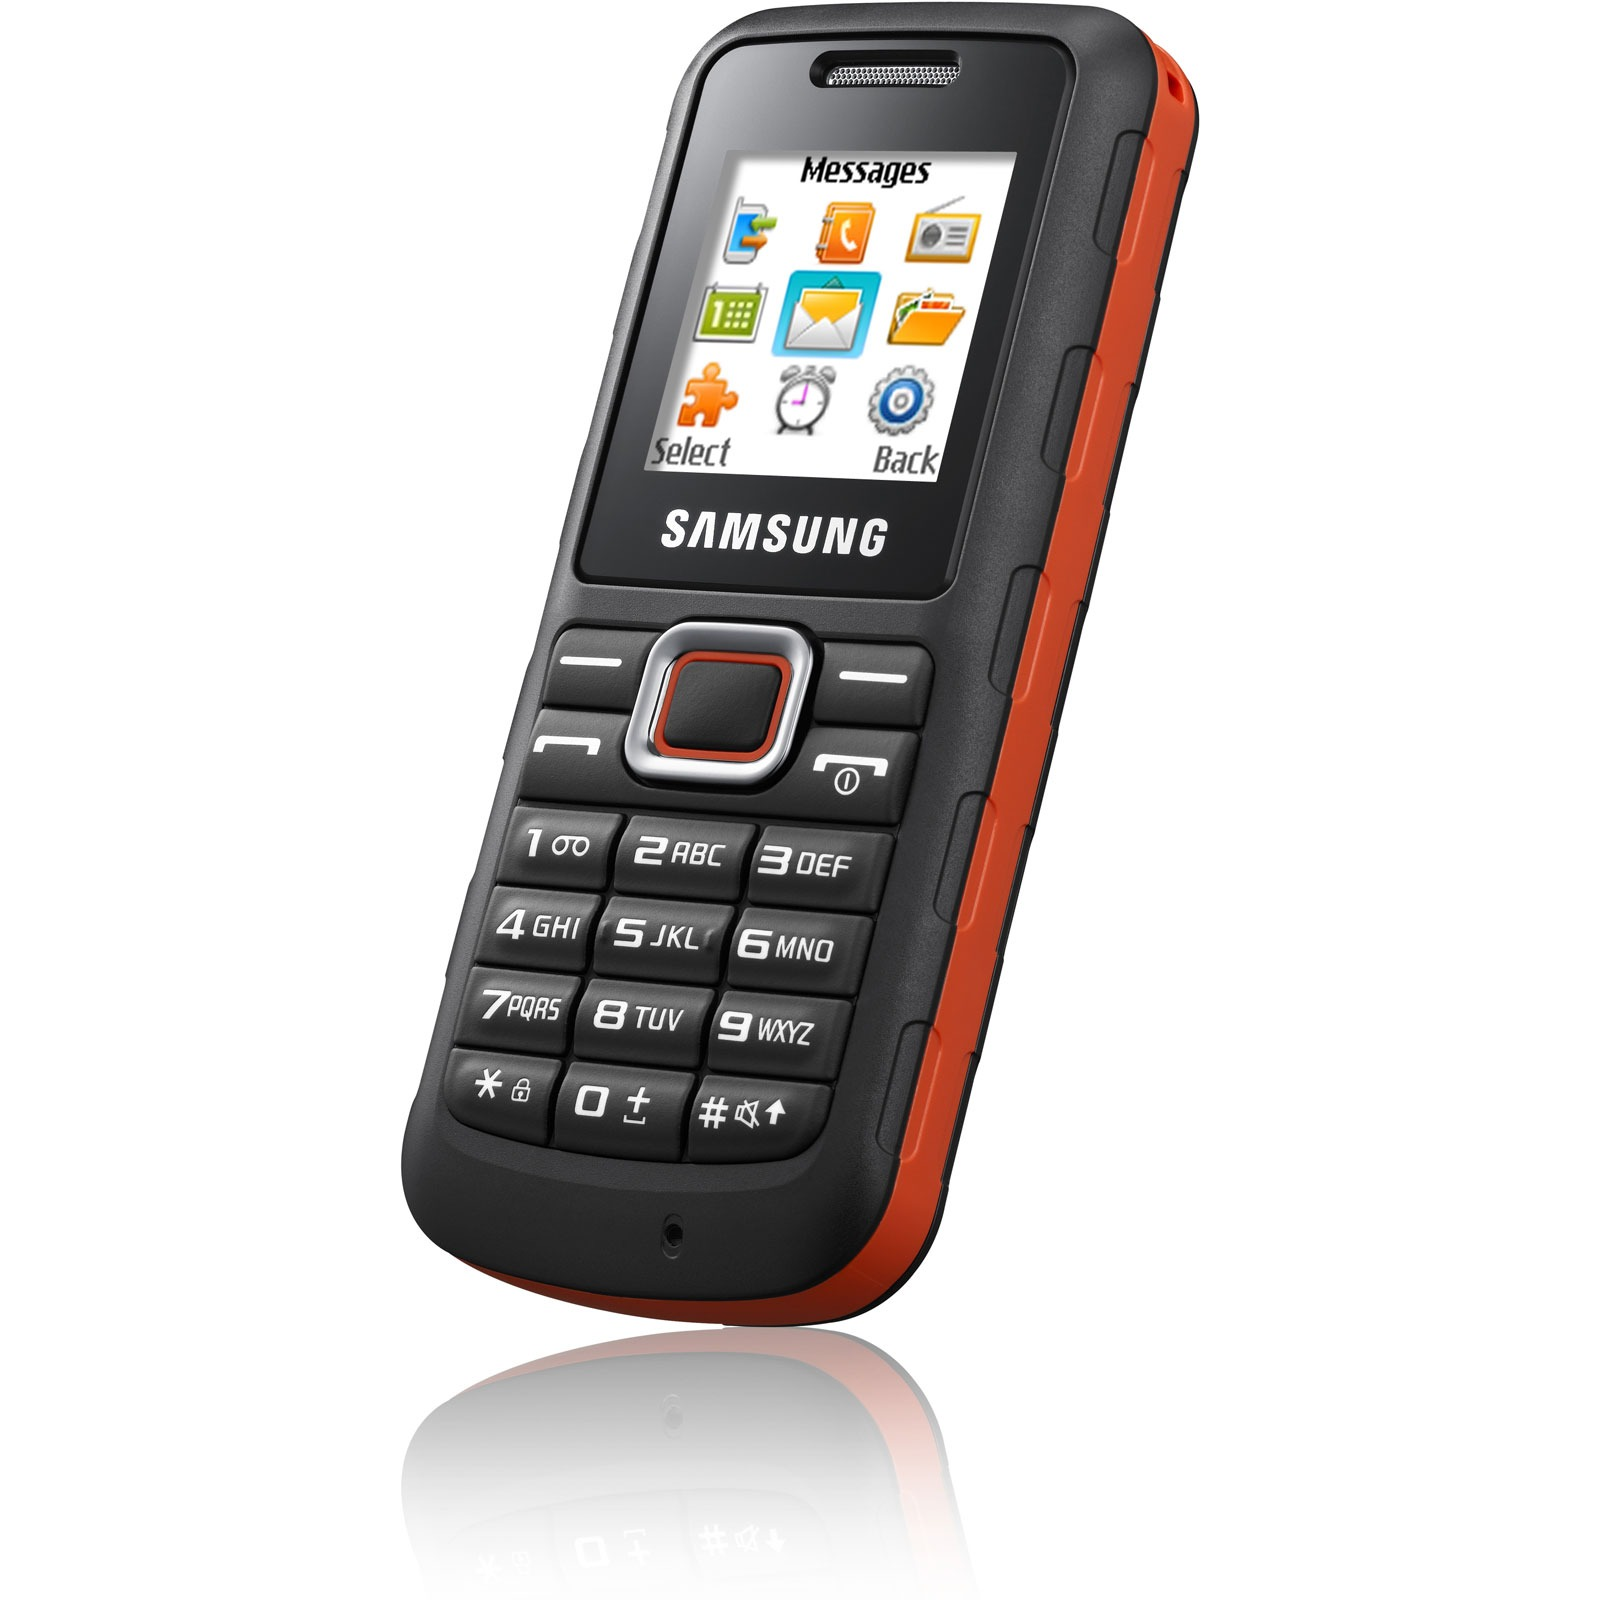 samsung e1130 noir orange mobile smartphone samsung. Black Bedroom Furniture Sets. Home Design Ideas